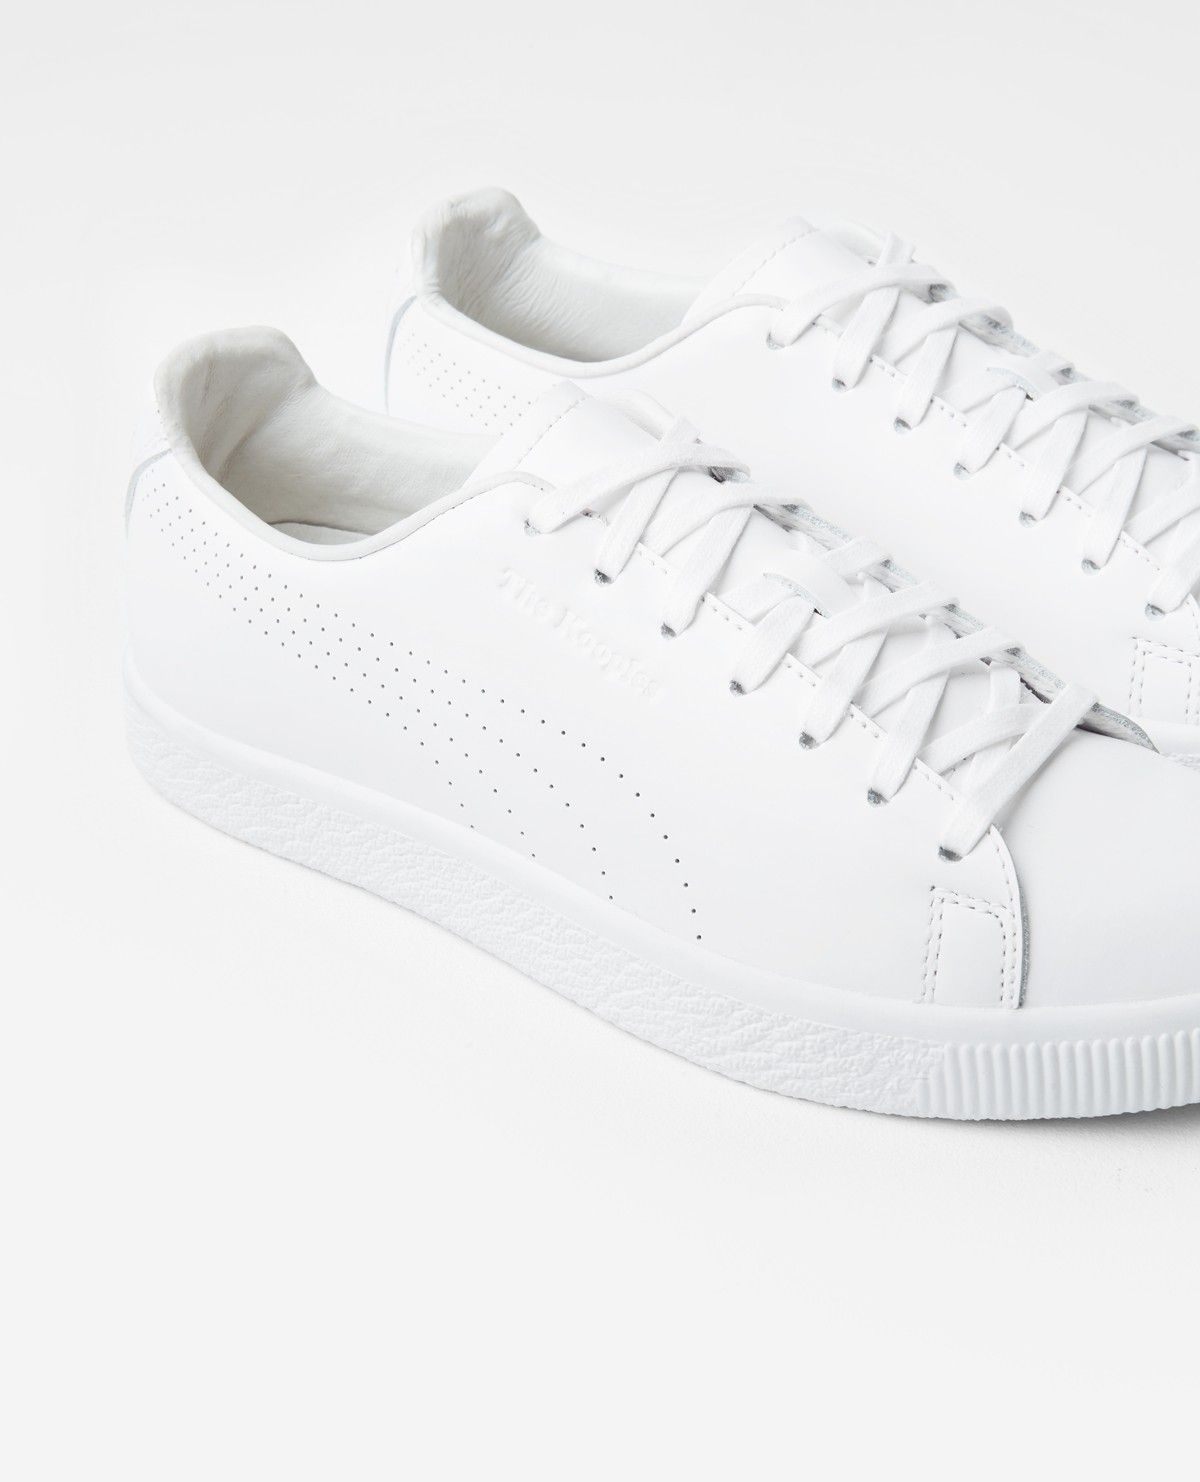 quality design bf0d8 9ed6f White Puma x The Kooples Clyde sneakers - THE KOOPLES ...